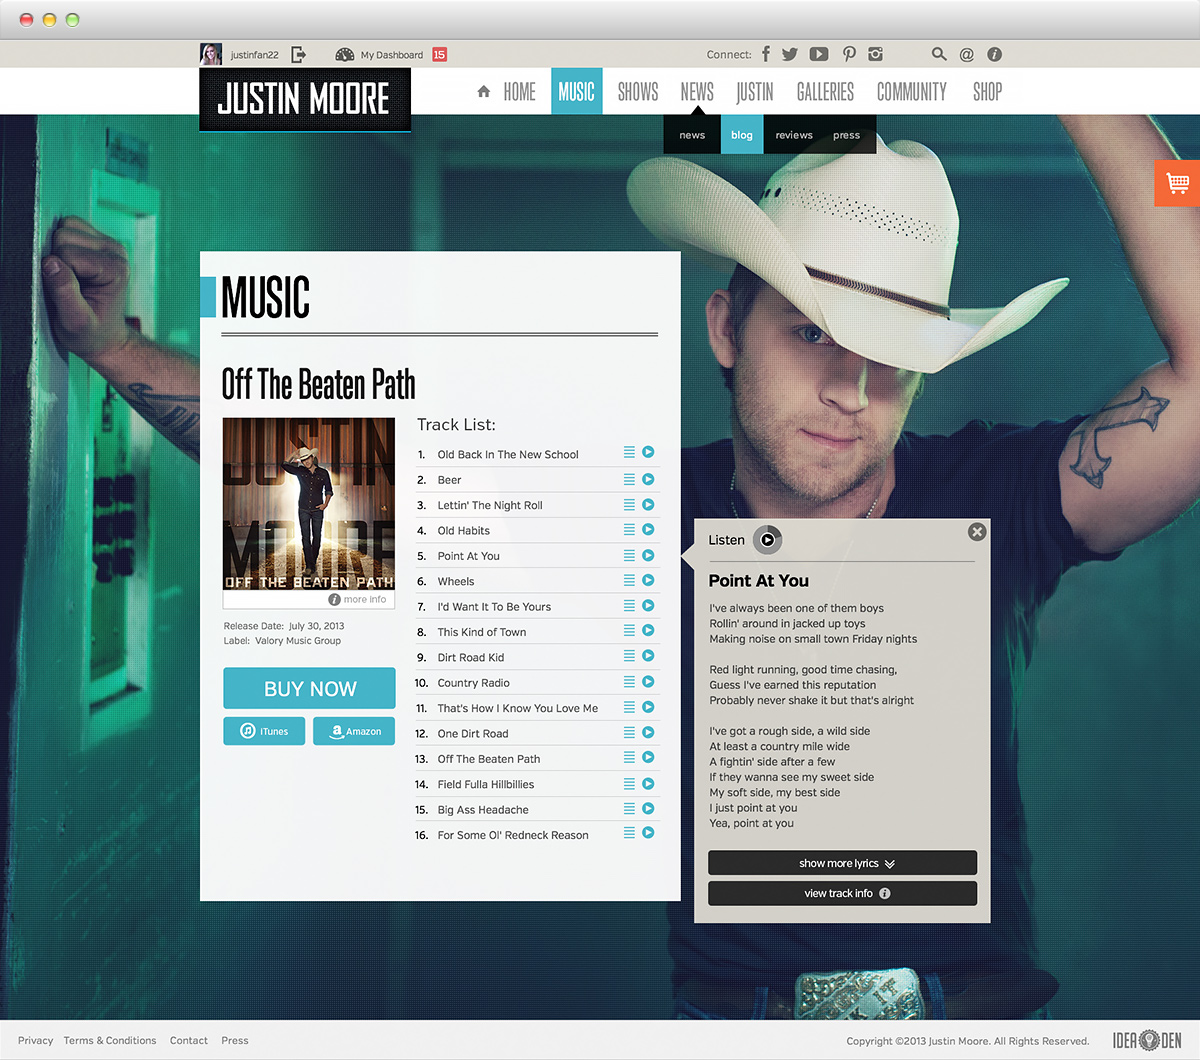 Justin Moore - Music